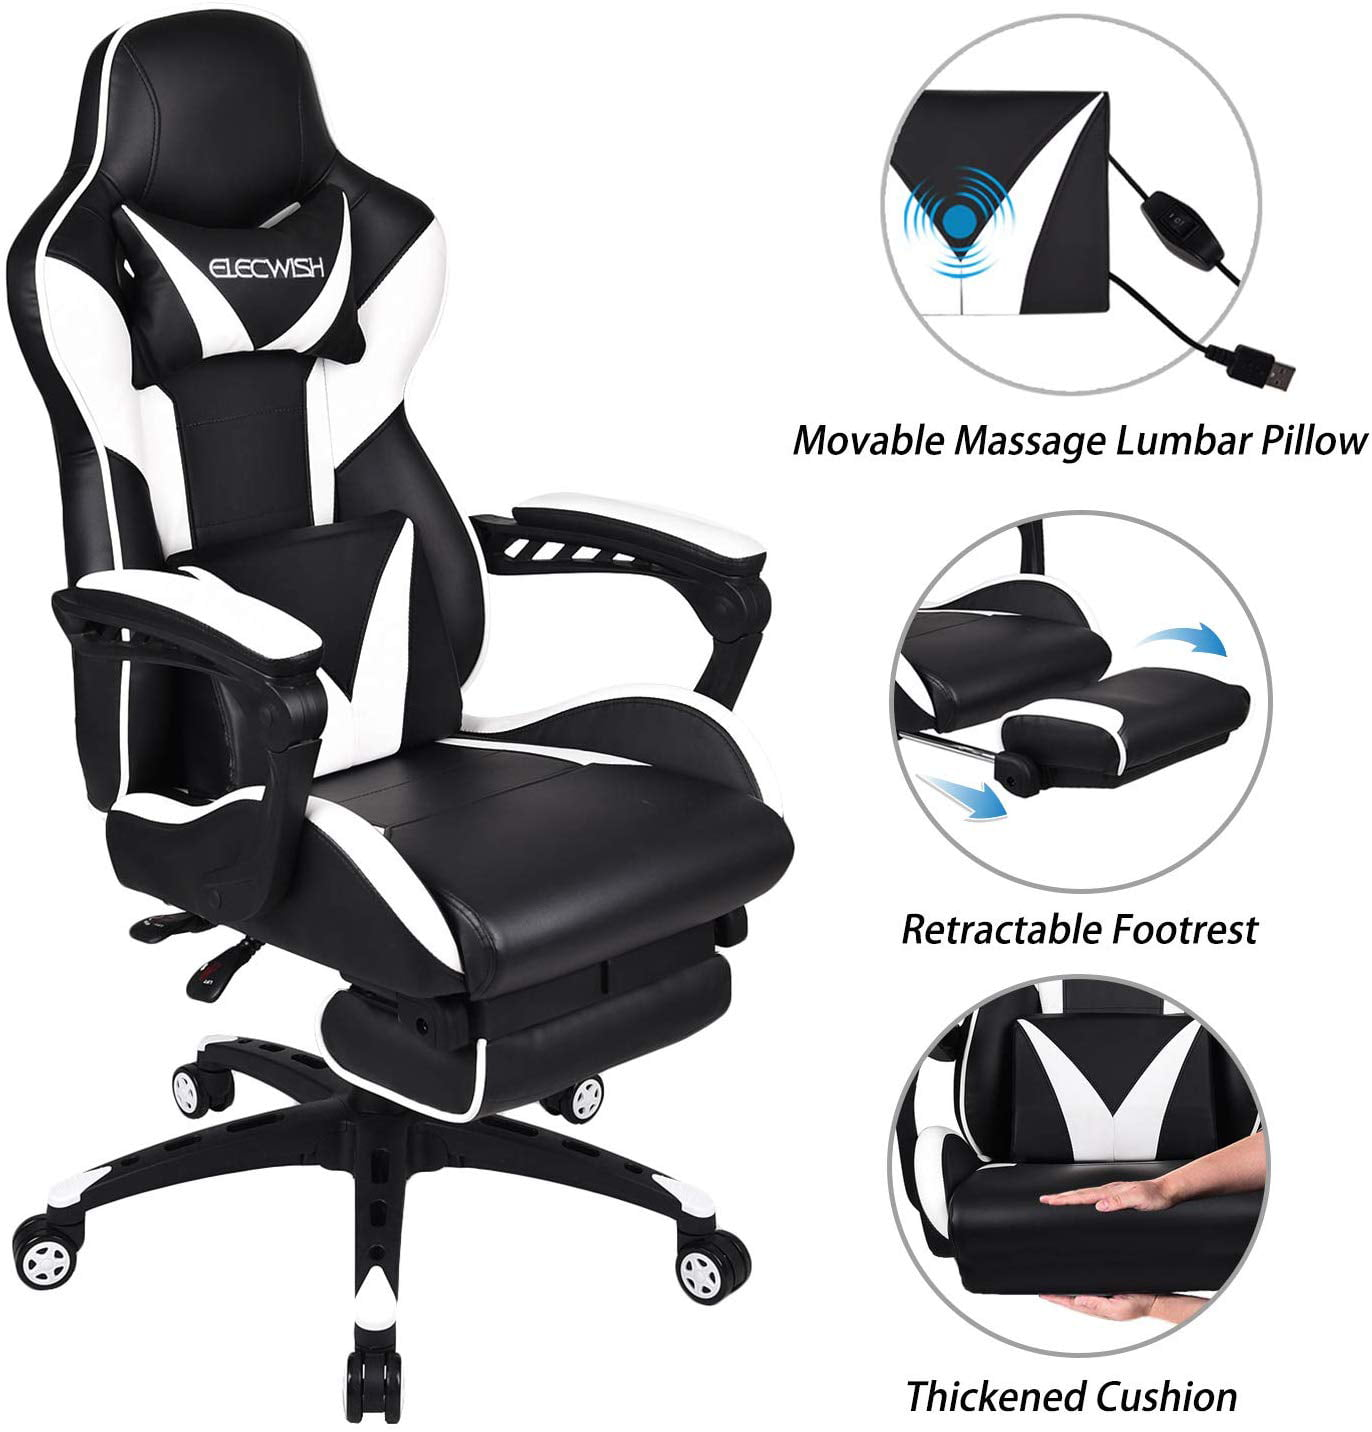 Elecwish Massage Computer Gaming Chair Reclining Ergonomic Racing Office Chair With Footrest High Back Pu Leather Gaming Desk Chair Large Size E Sport Chair With Headrest And Lumbar Support Walmart Com Walmart Com